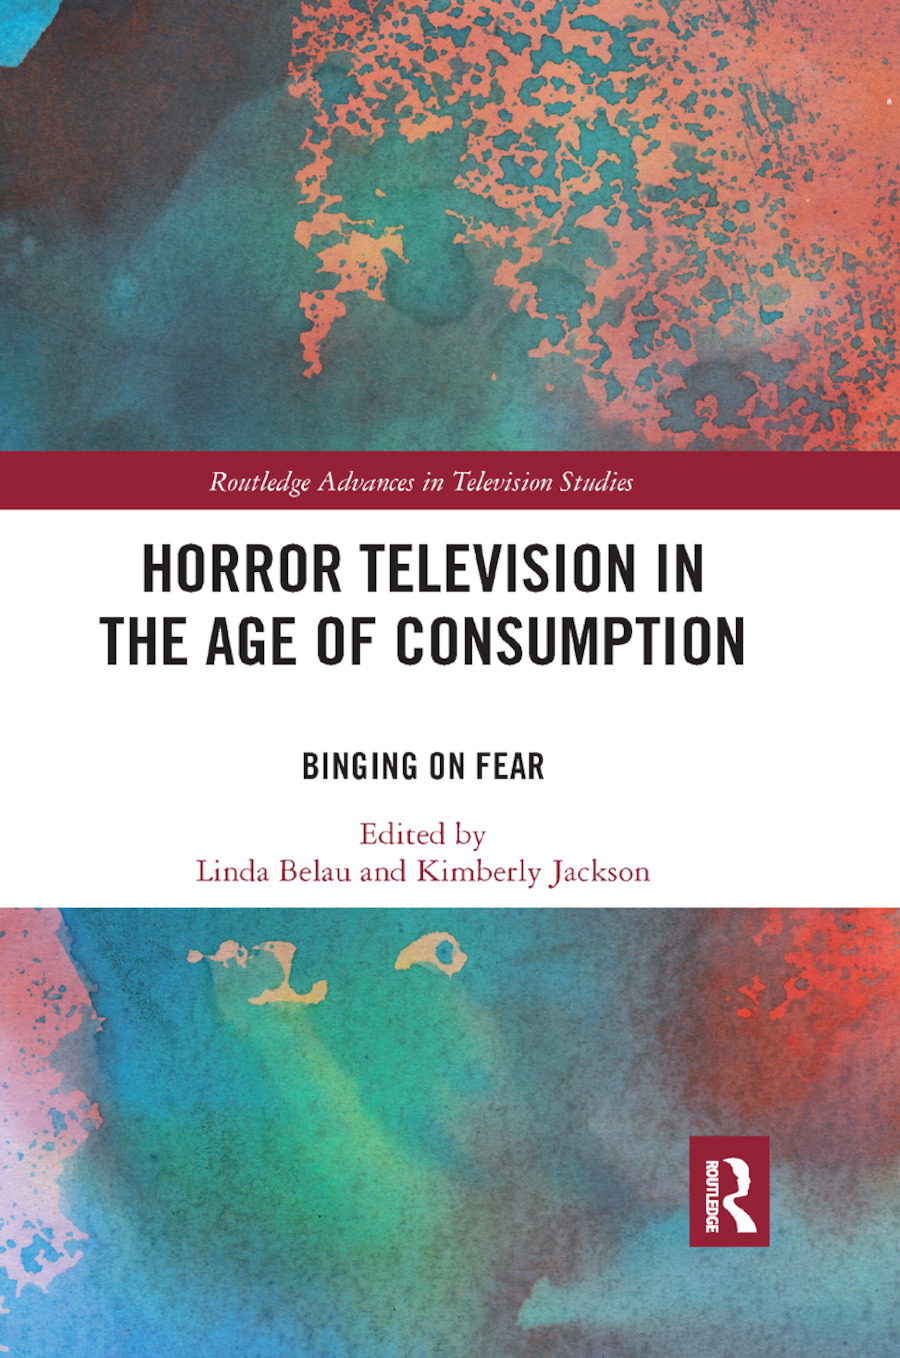 Horror Television in the Age of Consumption